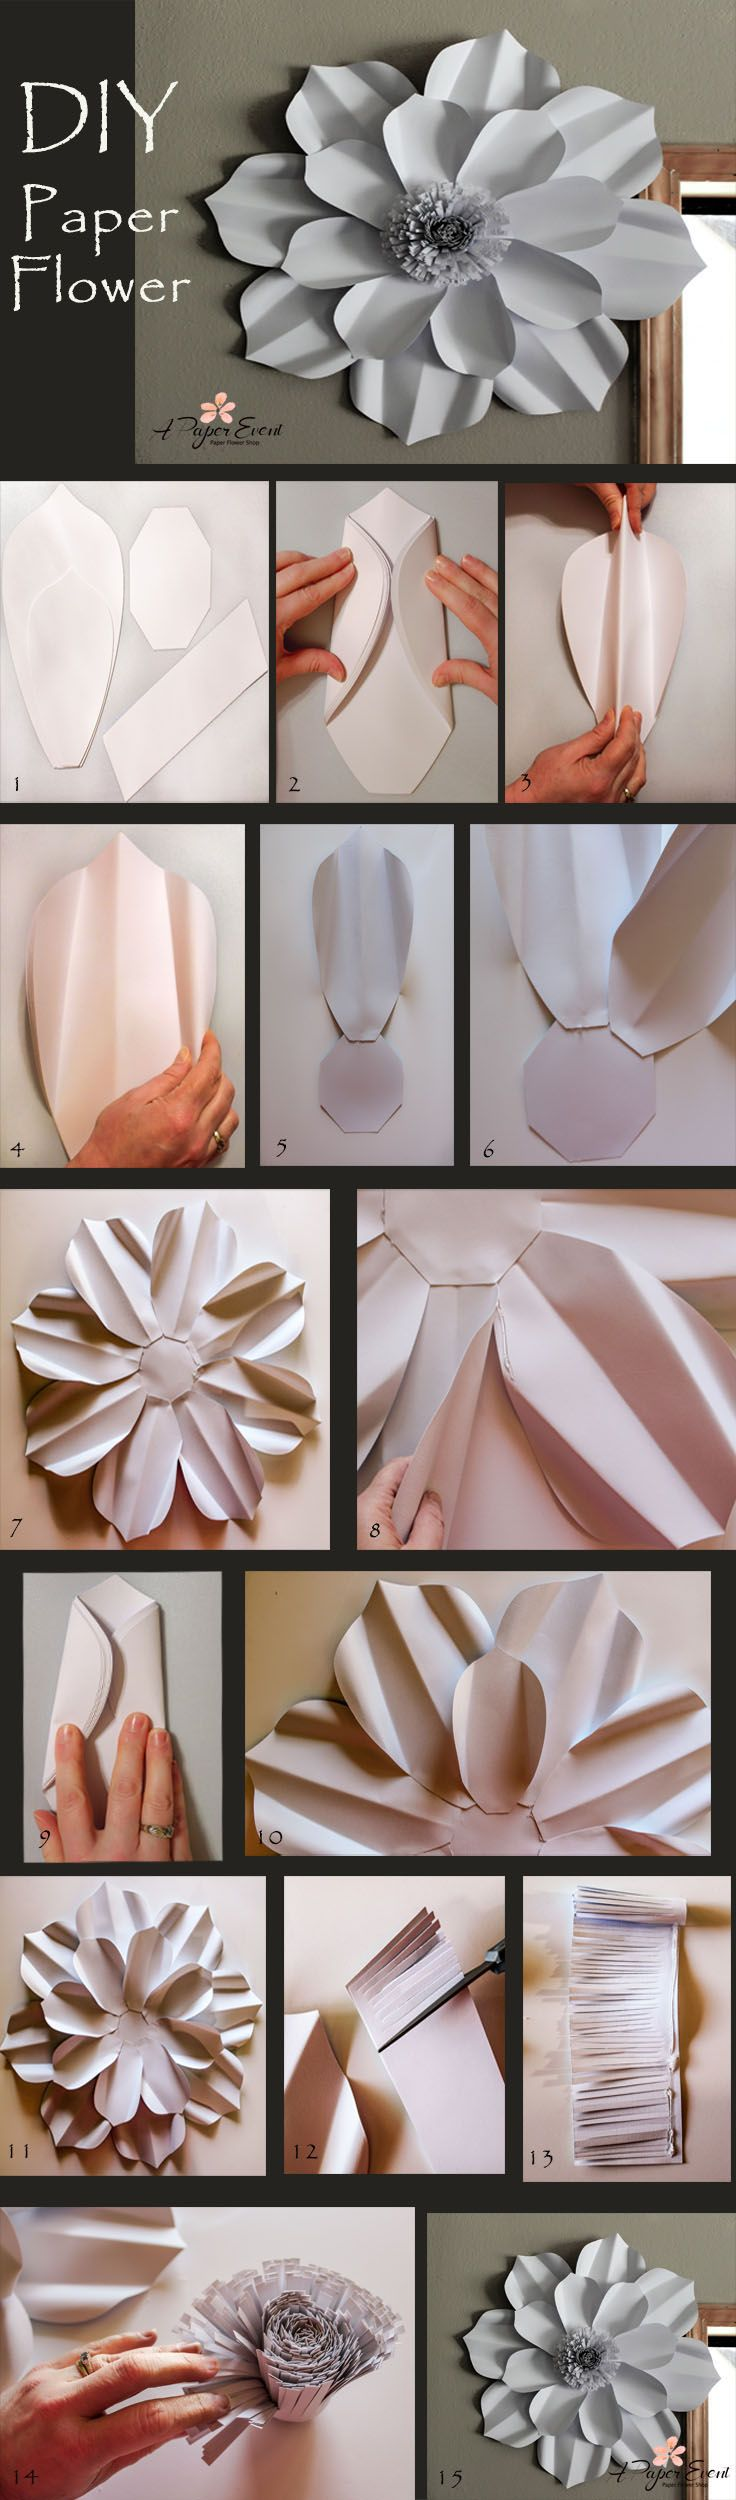 Make Your Own Giant Paper Flower Create Breathtaking Backdrops For Any Event Template And